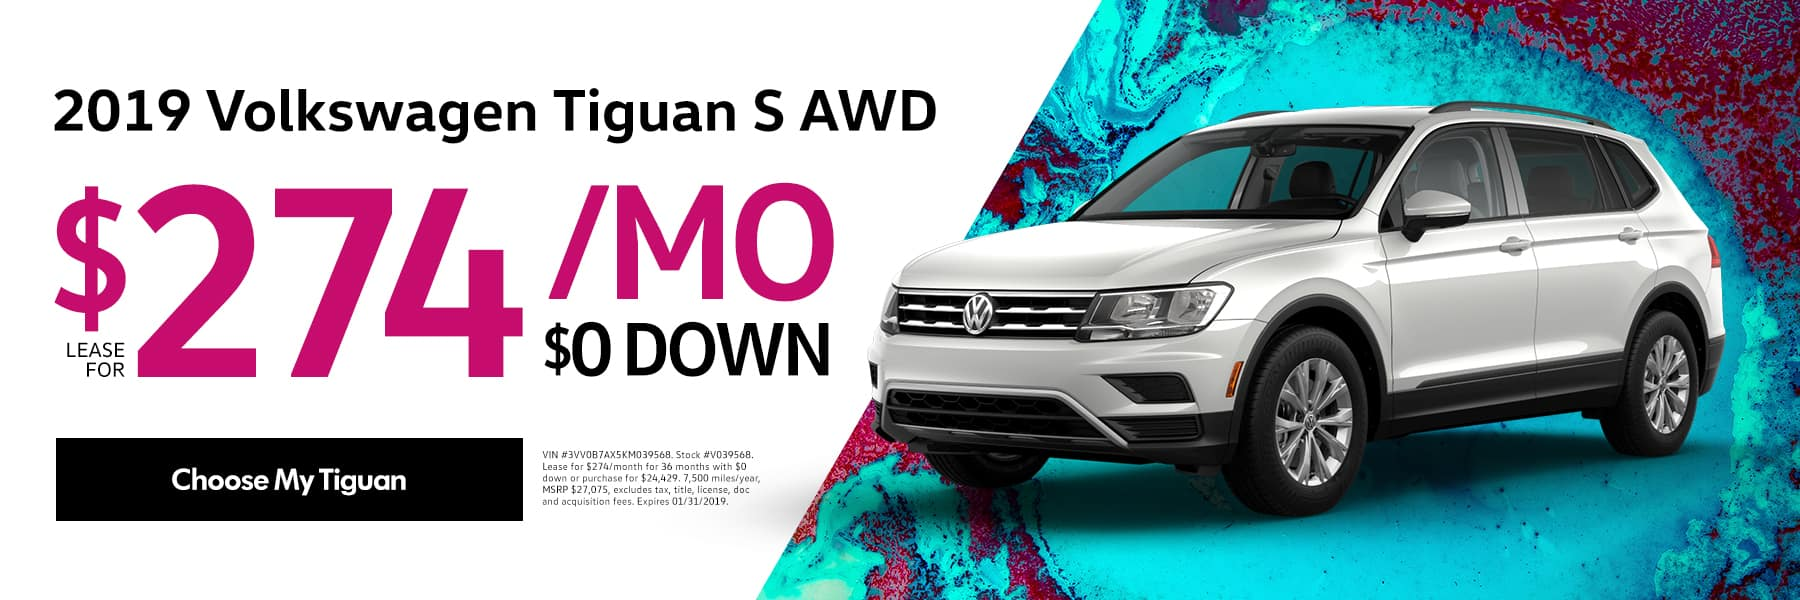 2019 Volkswagen Tiguan S AWD - Lease for $274/month with $0 down - Choose My Tiguan